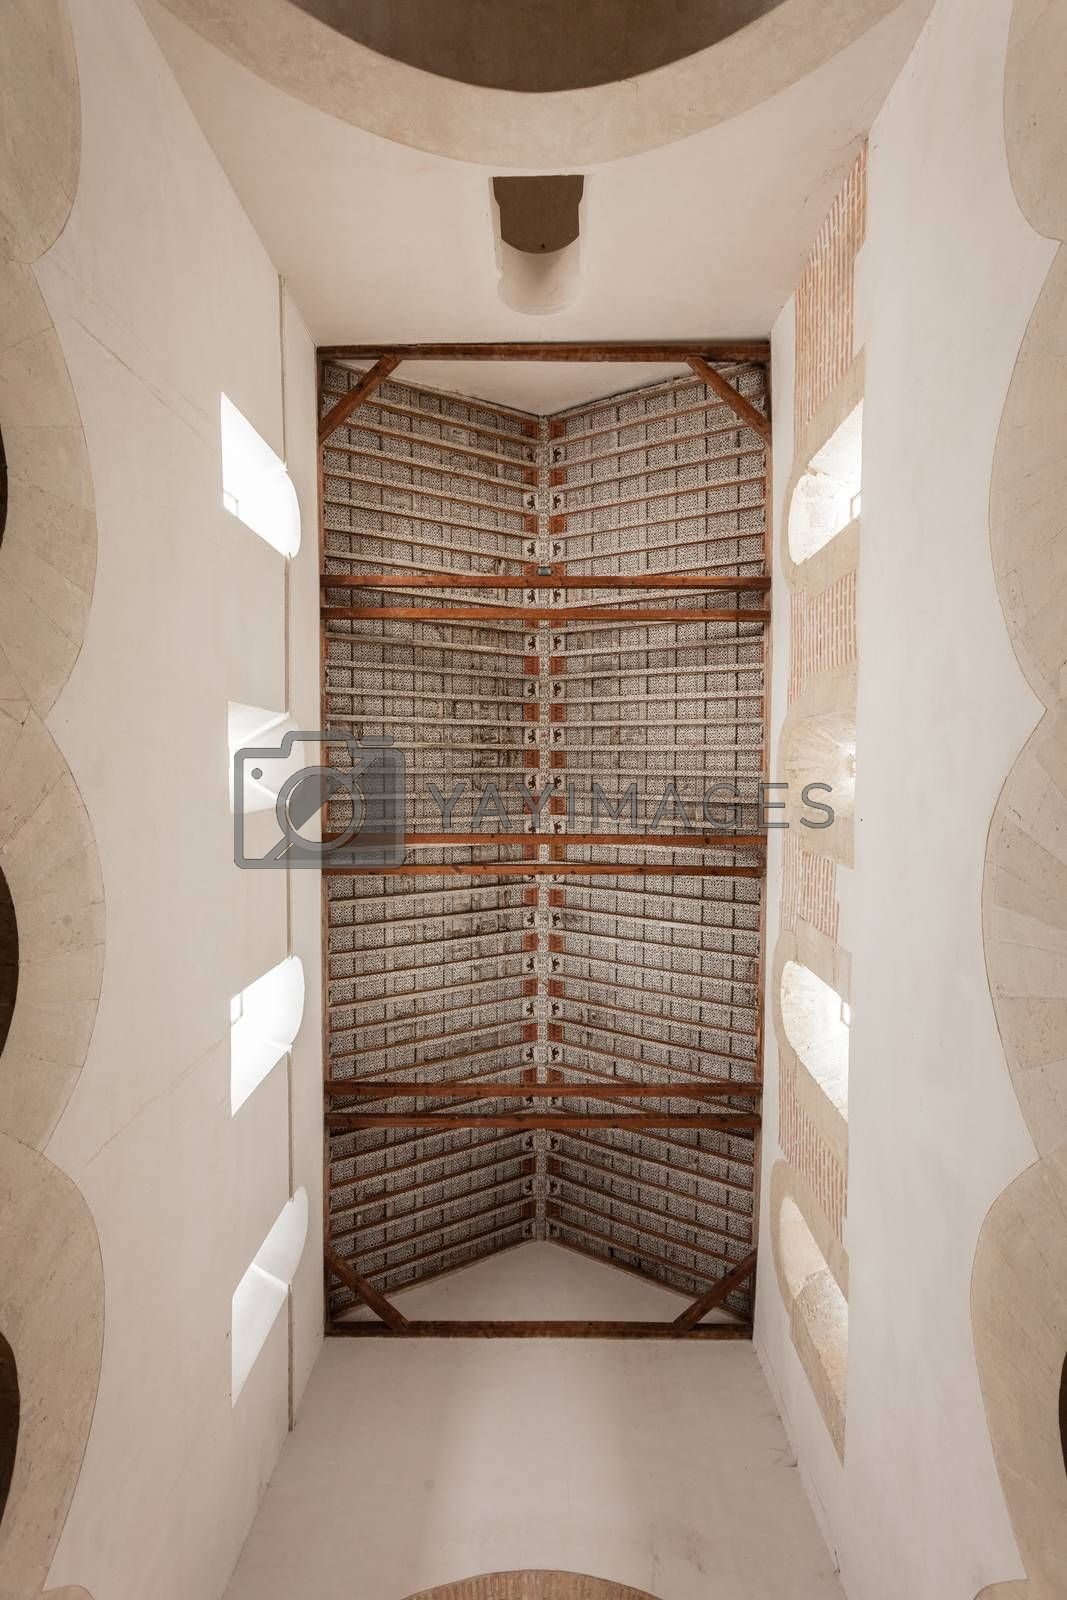 delicate coffered ceiling in San Cebrian de Mazote mozarabic church in the province of Valladolid Spain